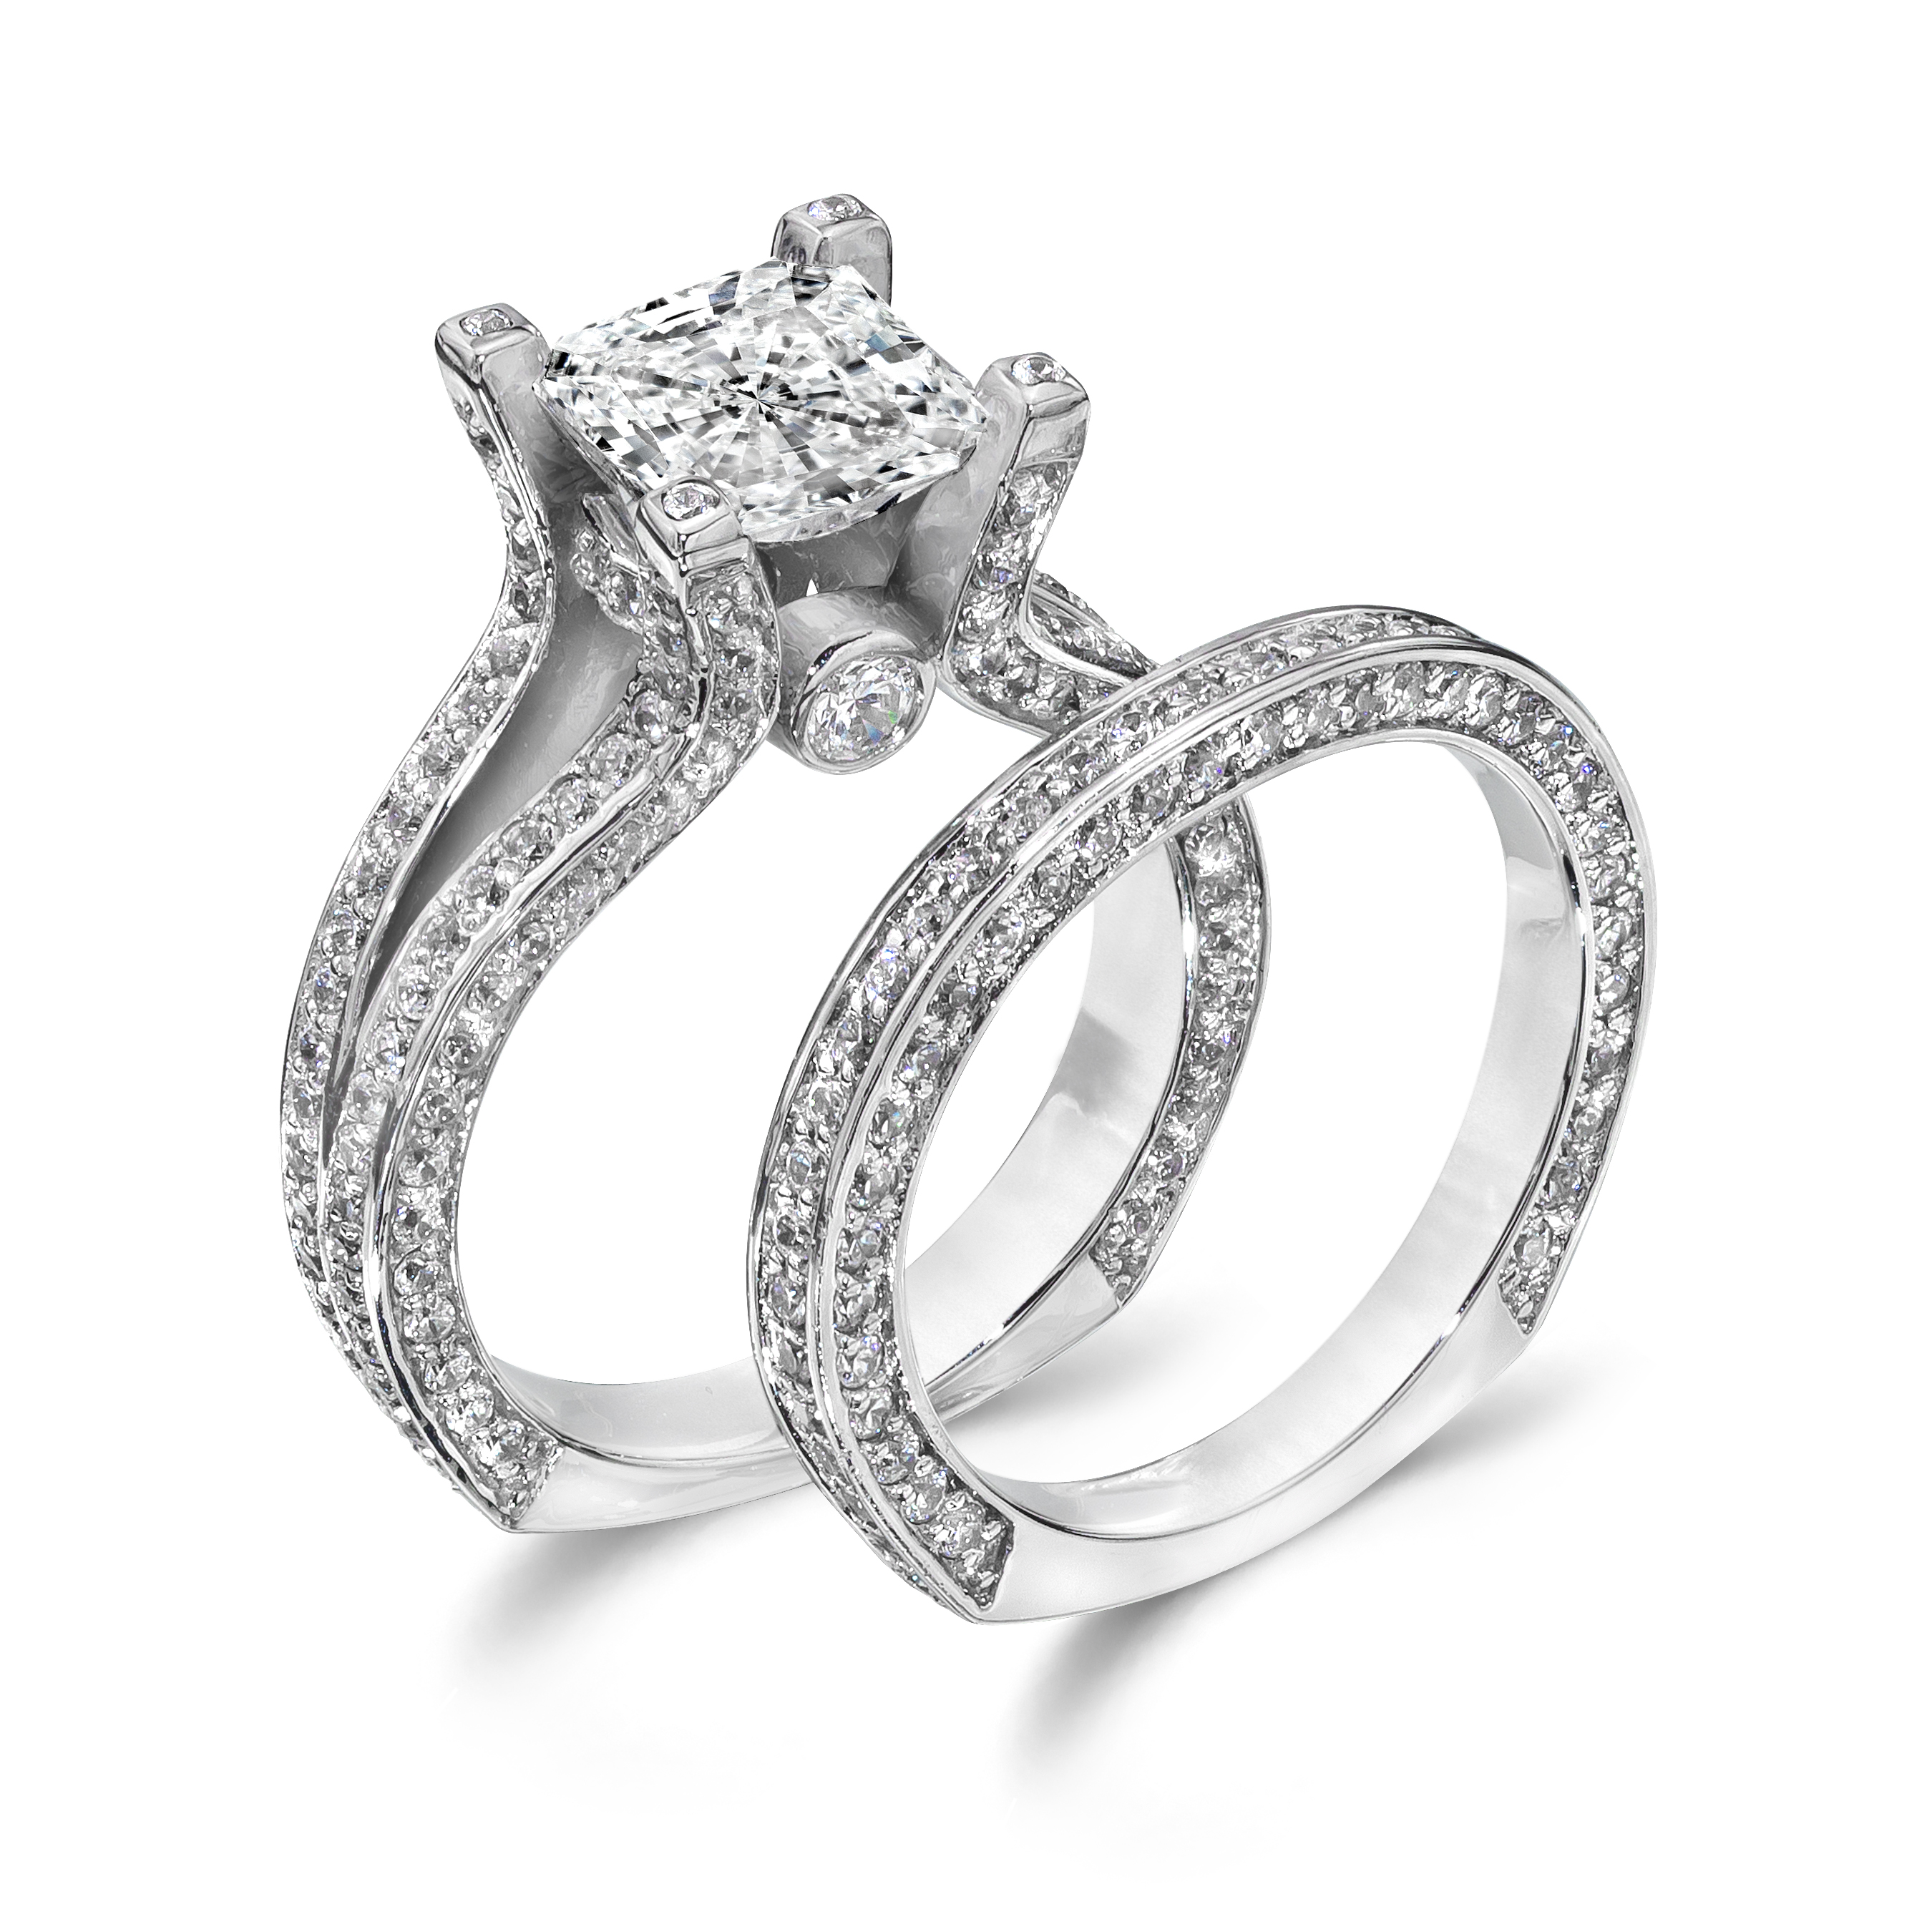 Birkat Elyon Experiences Growth As S Discover The Value Of Cubic Zirconia Wedding Sets